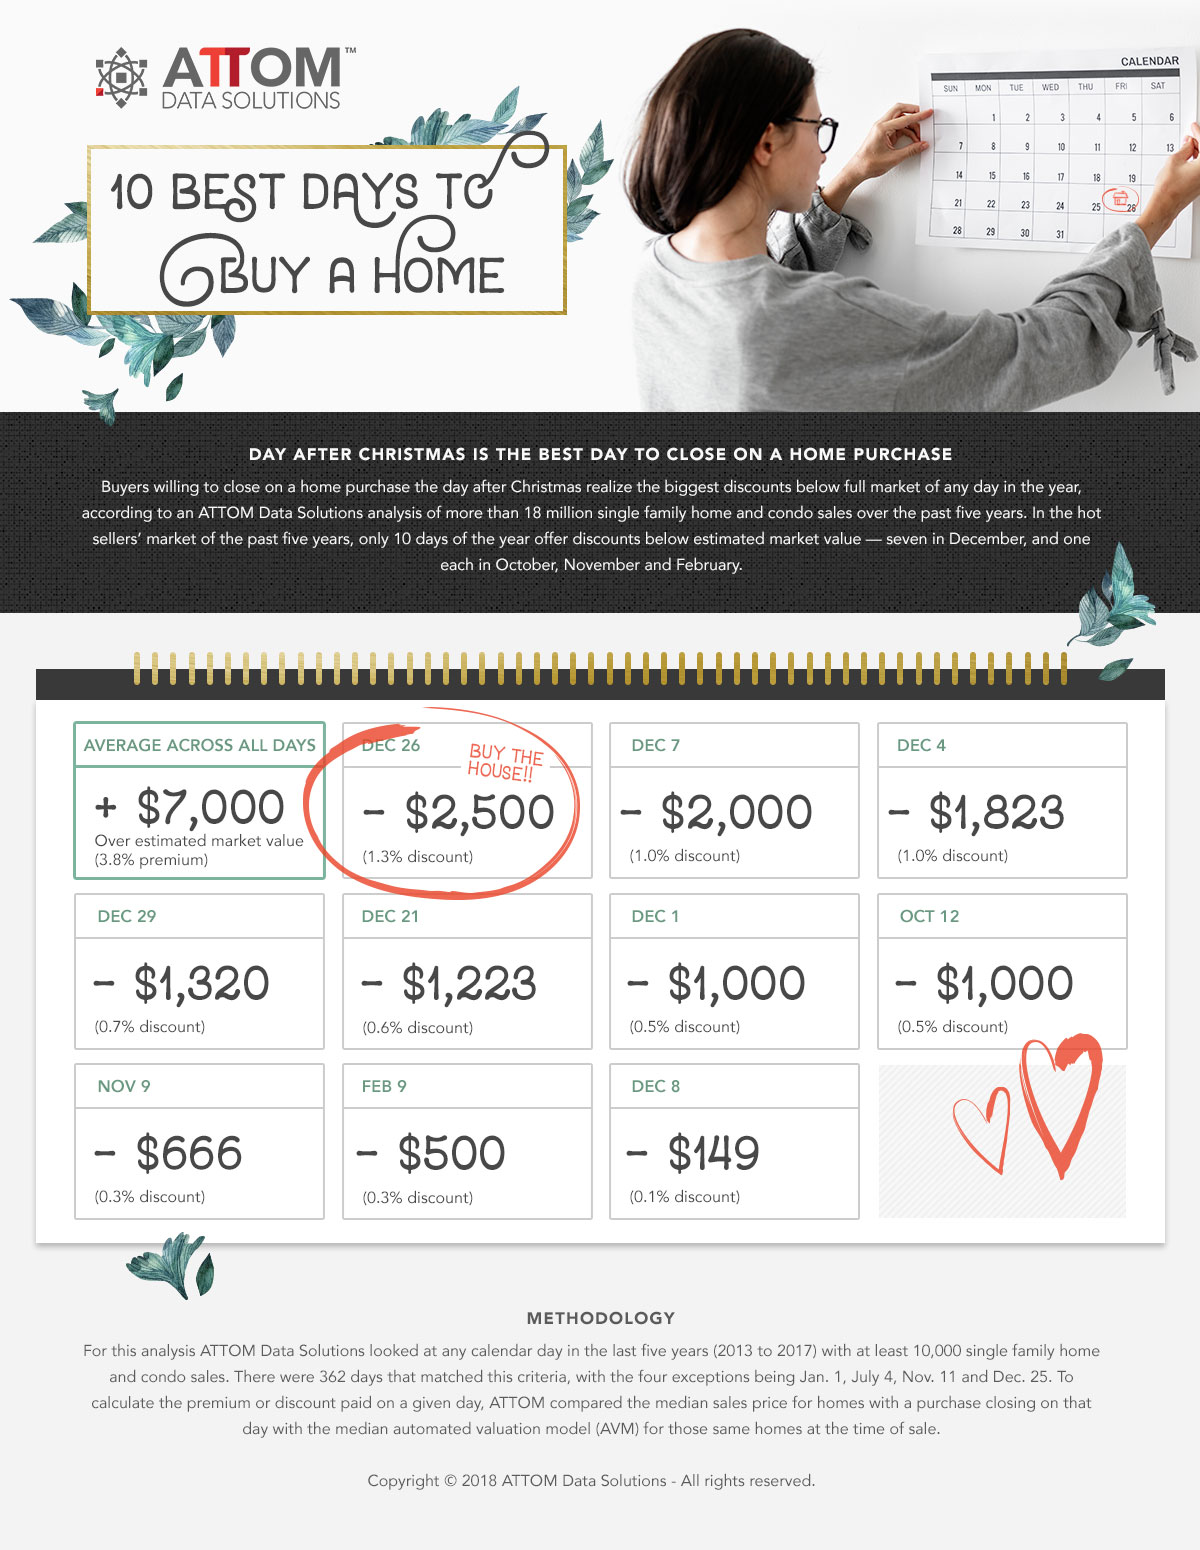 Best Day to Buy a New Home is Dec 26 Infographic